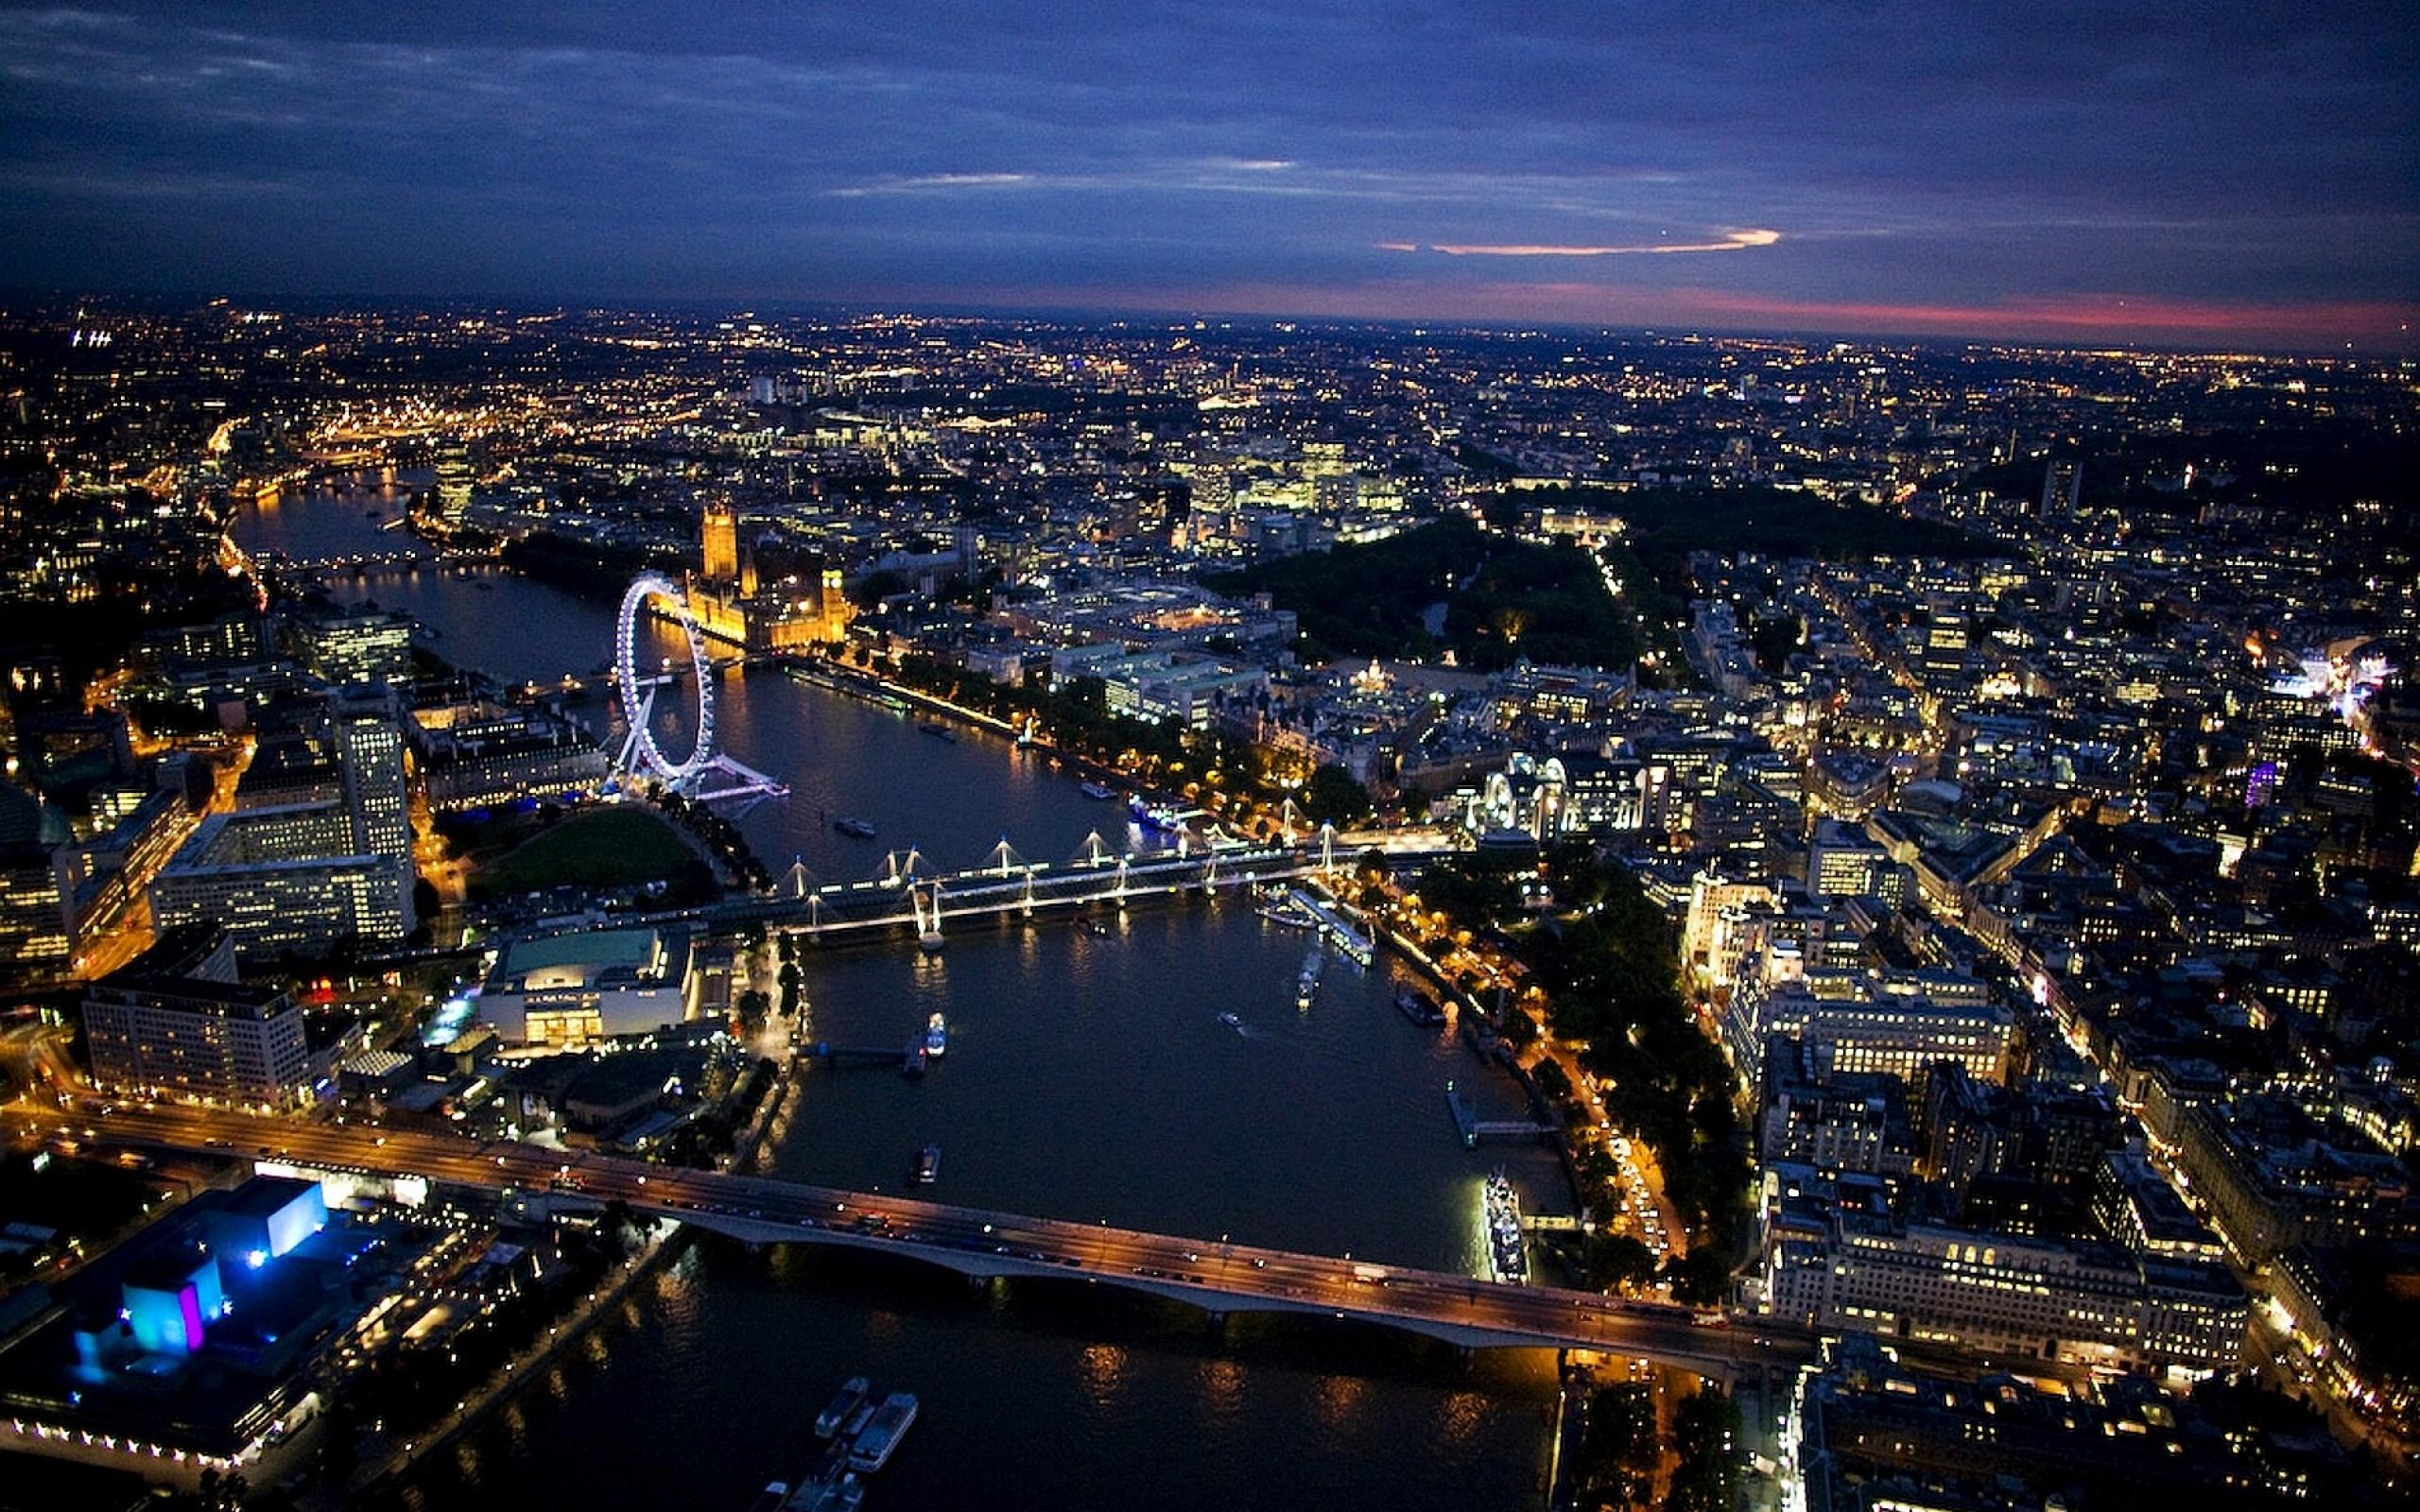 London At Night Wallpaper